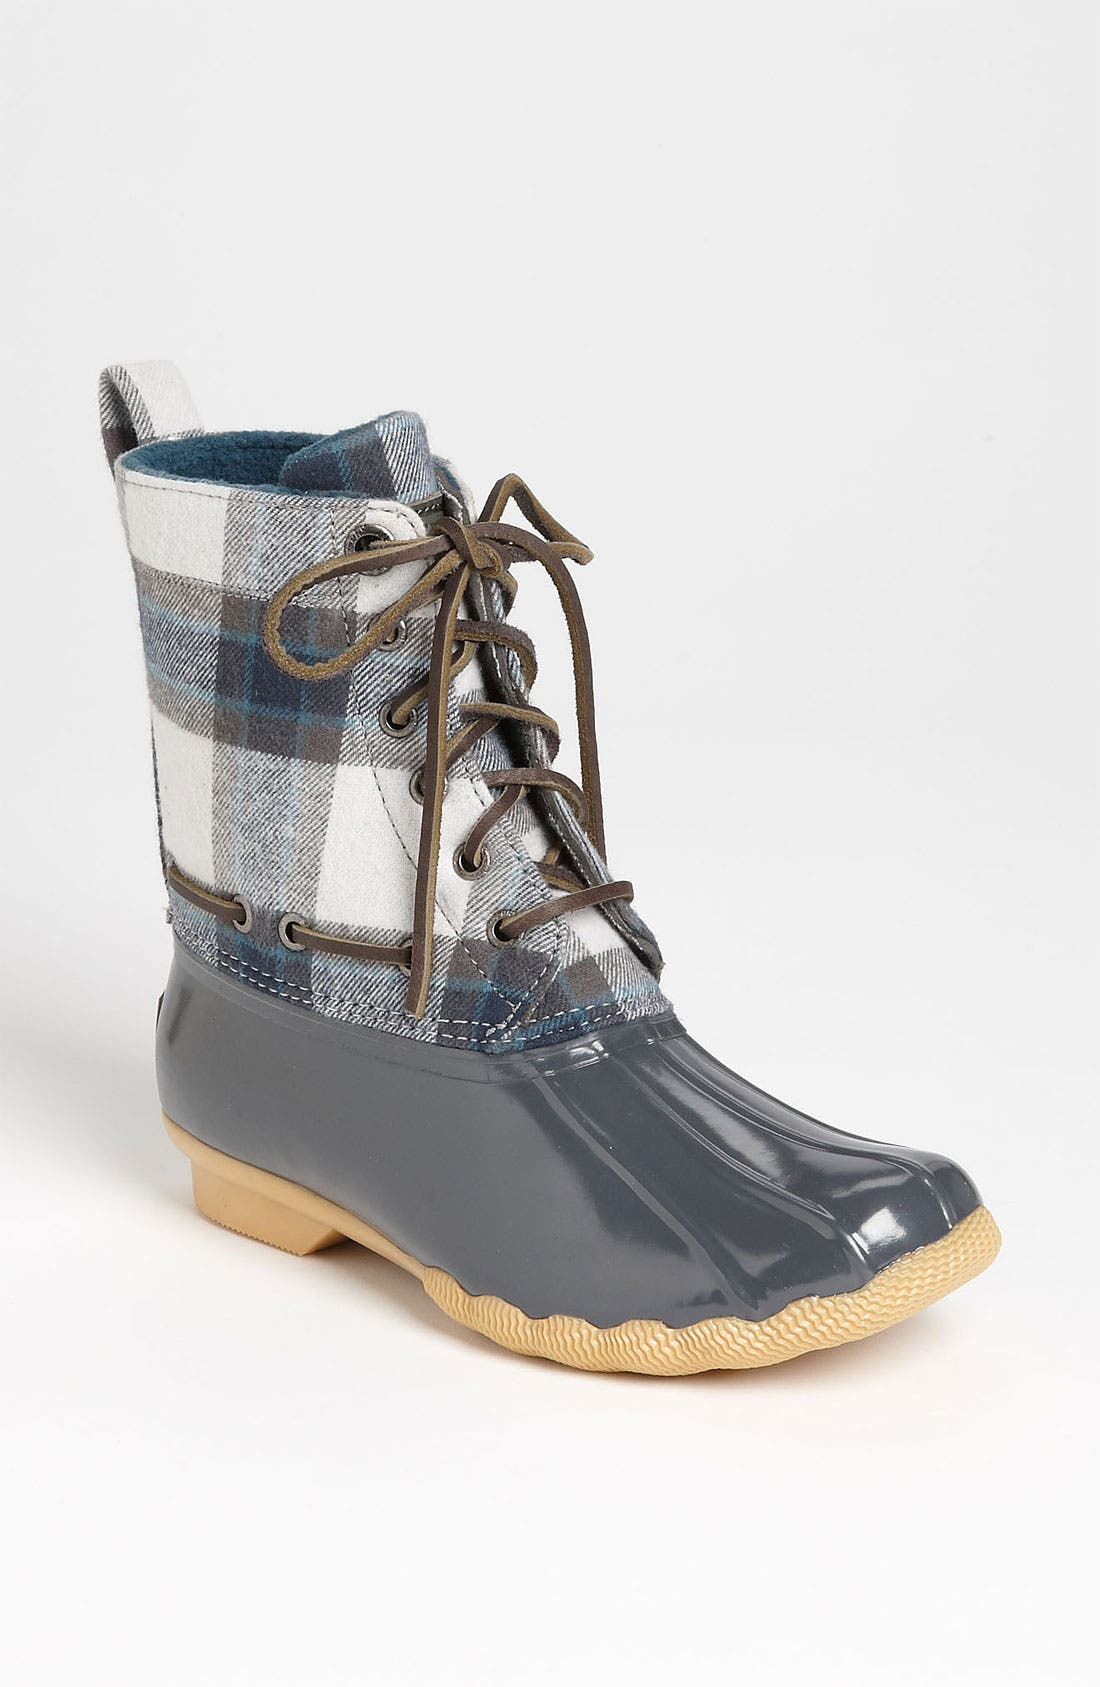 Alternate Image 1 Selected - Sperry Top-Sider® 'Shearwater' Boot